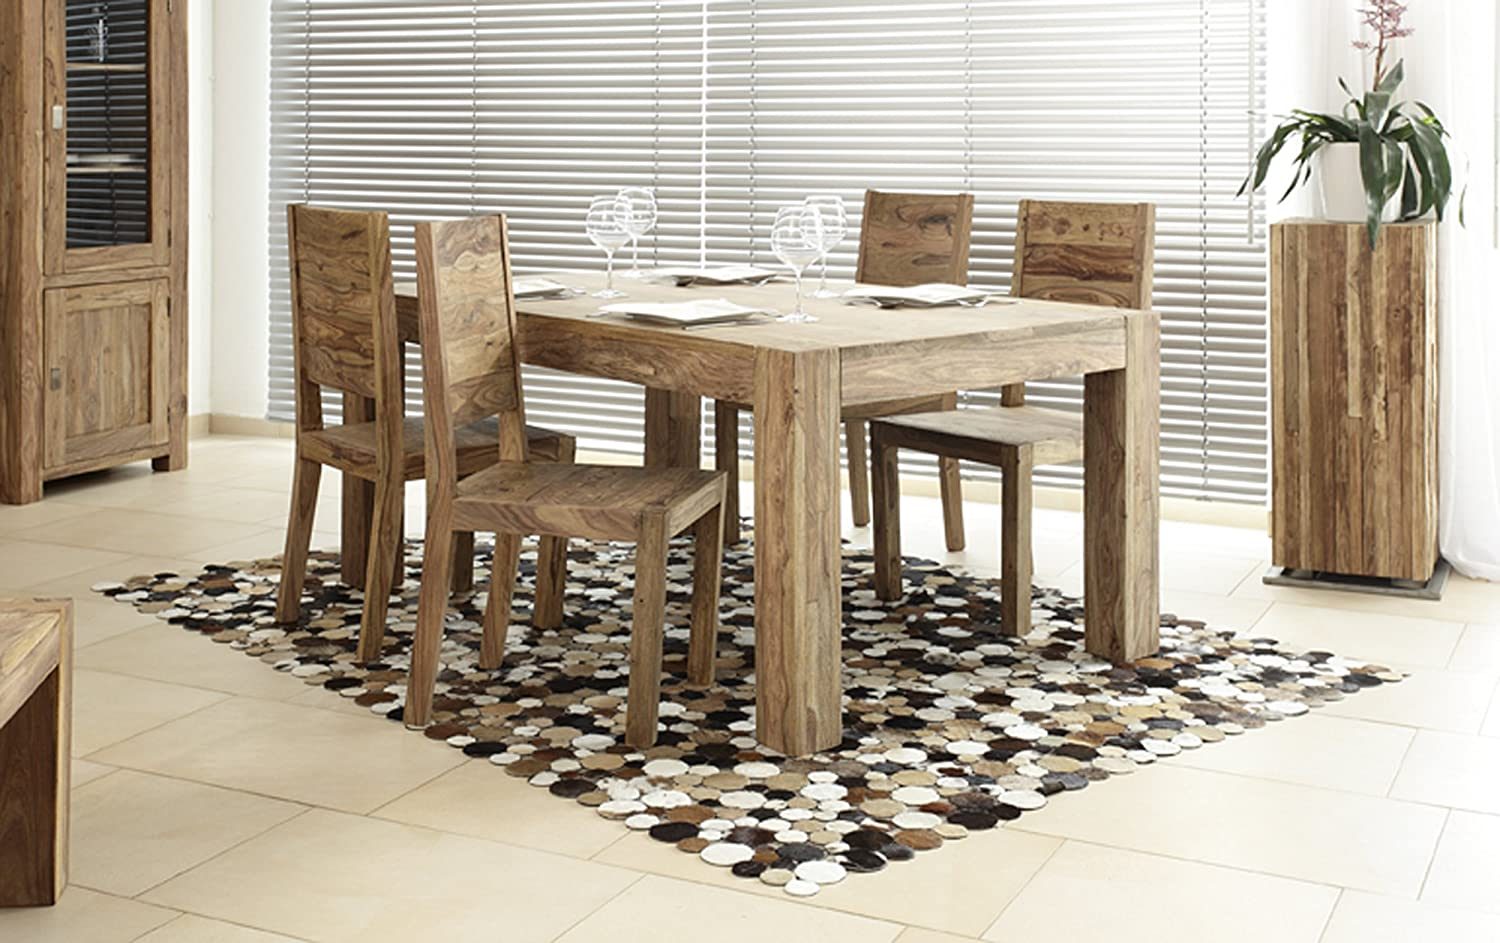 Wolf Mobel Yoga Dining Table 160 X 100 Cm With 4 Chairs Solid Shisham Wood Amazon Co Uk Home Kitchen